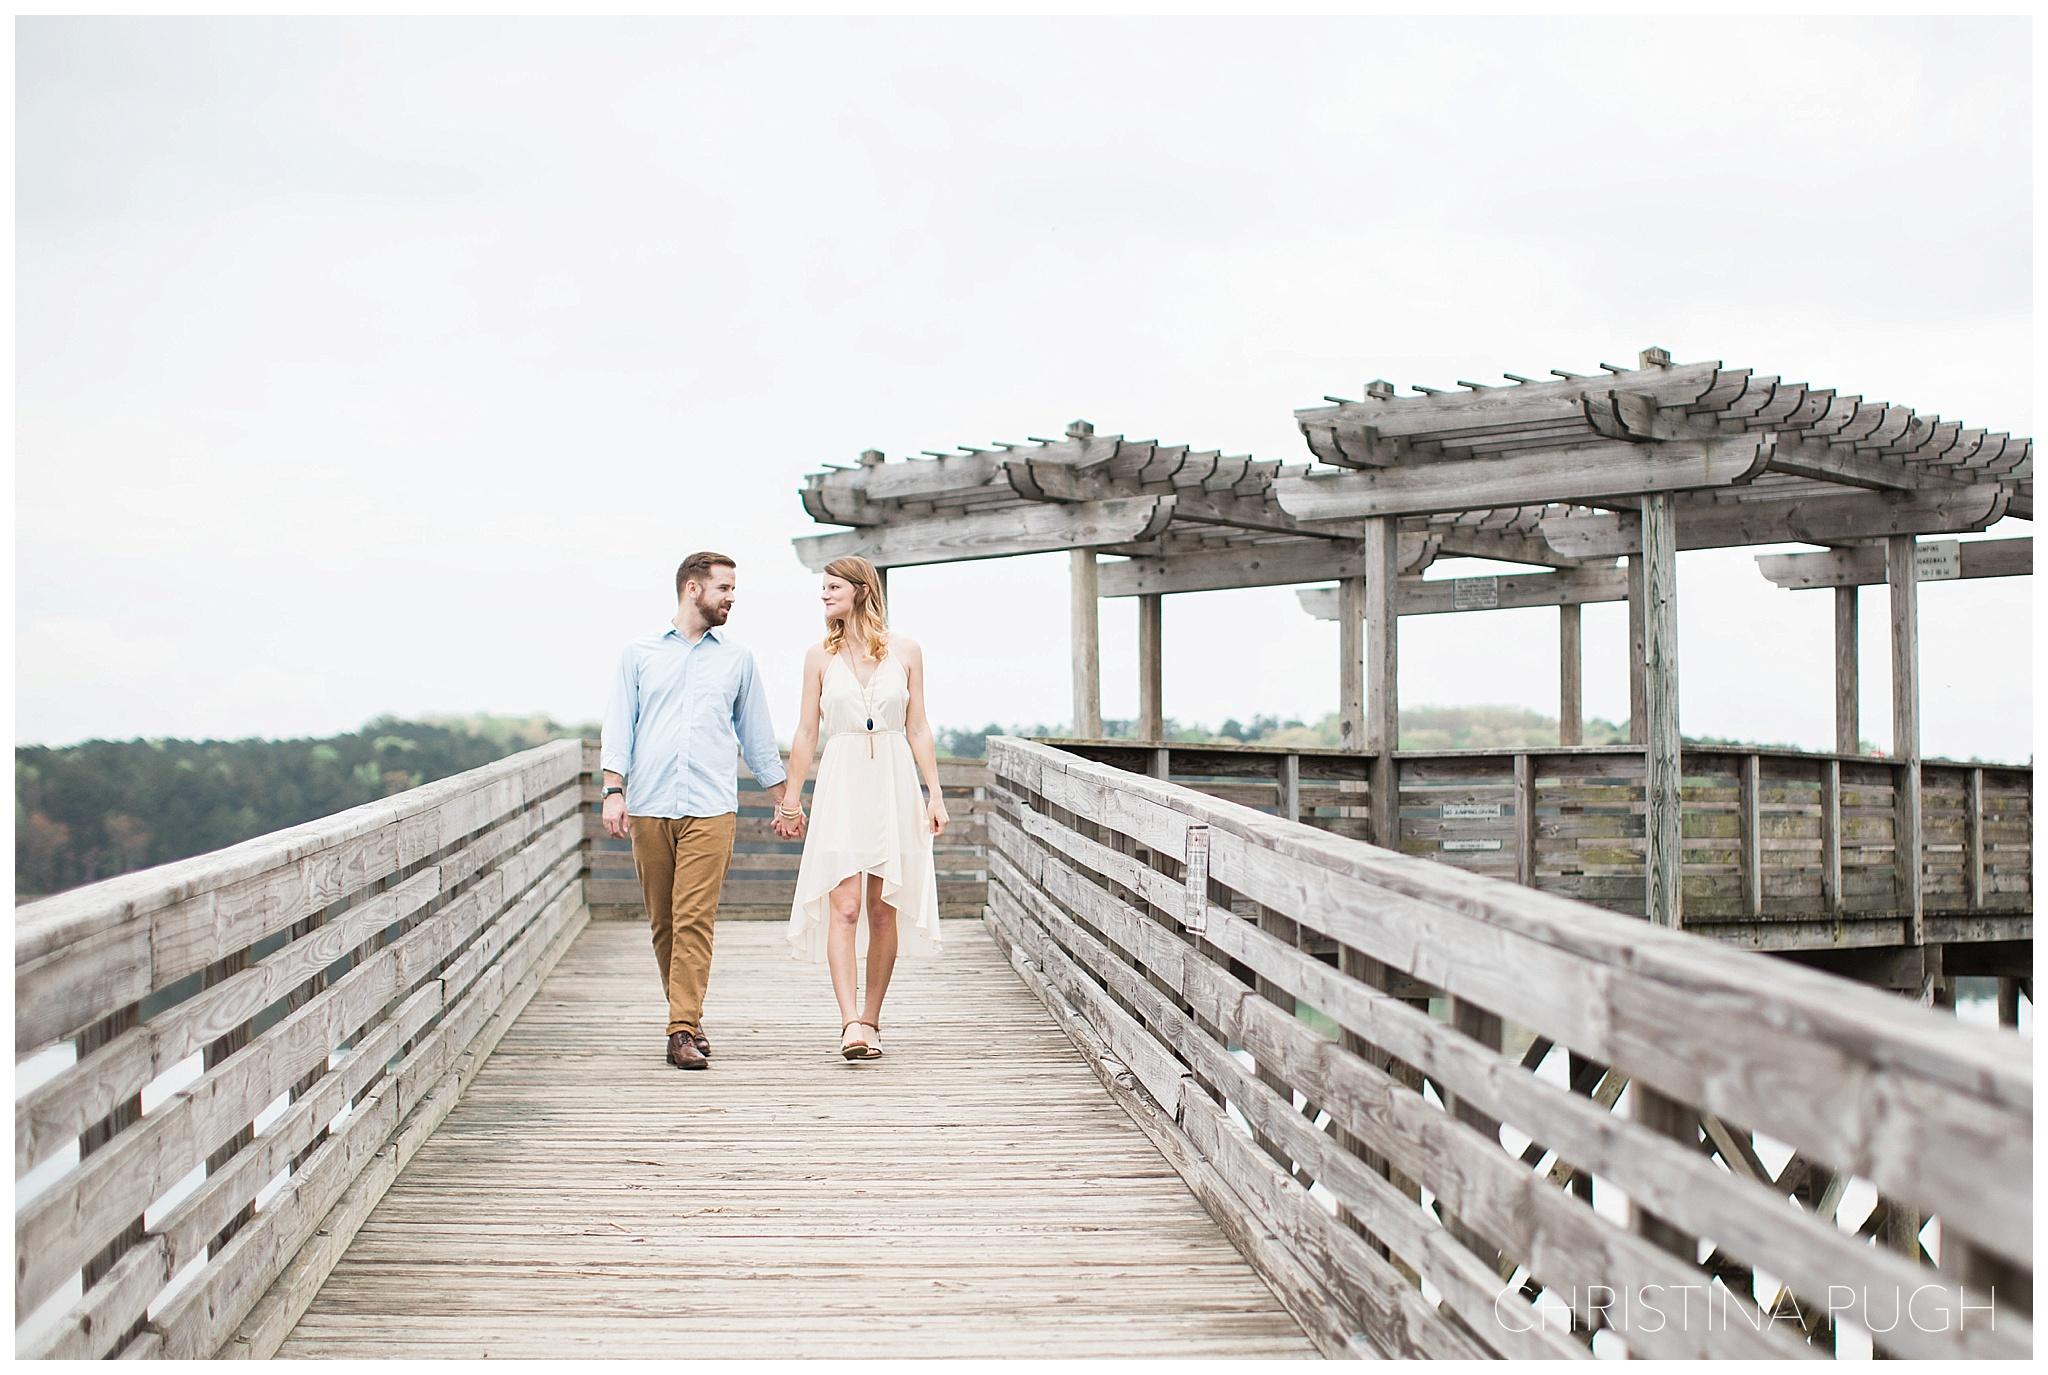 Acworth-Kennesaw-Engagement-Photography-Christina-Pugh-6